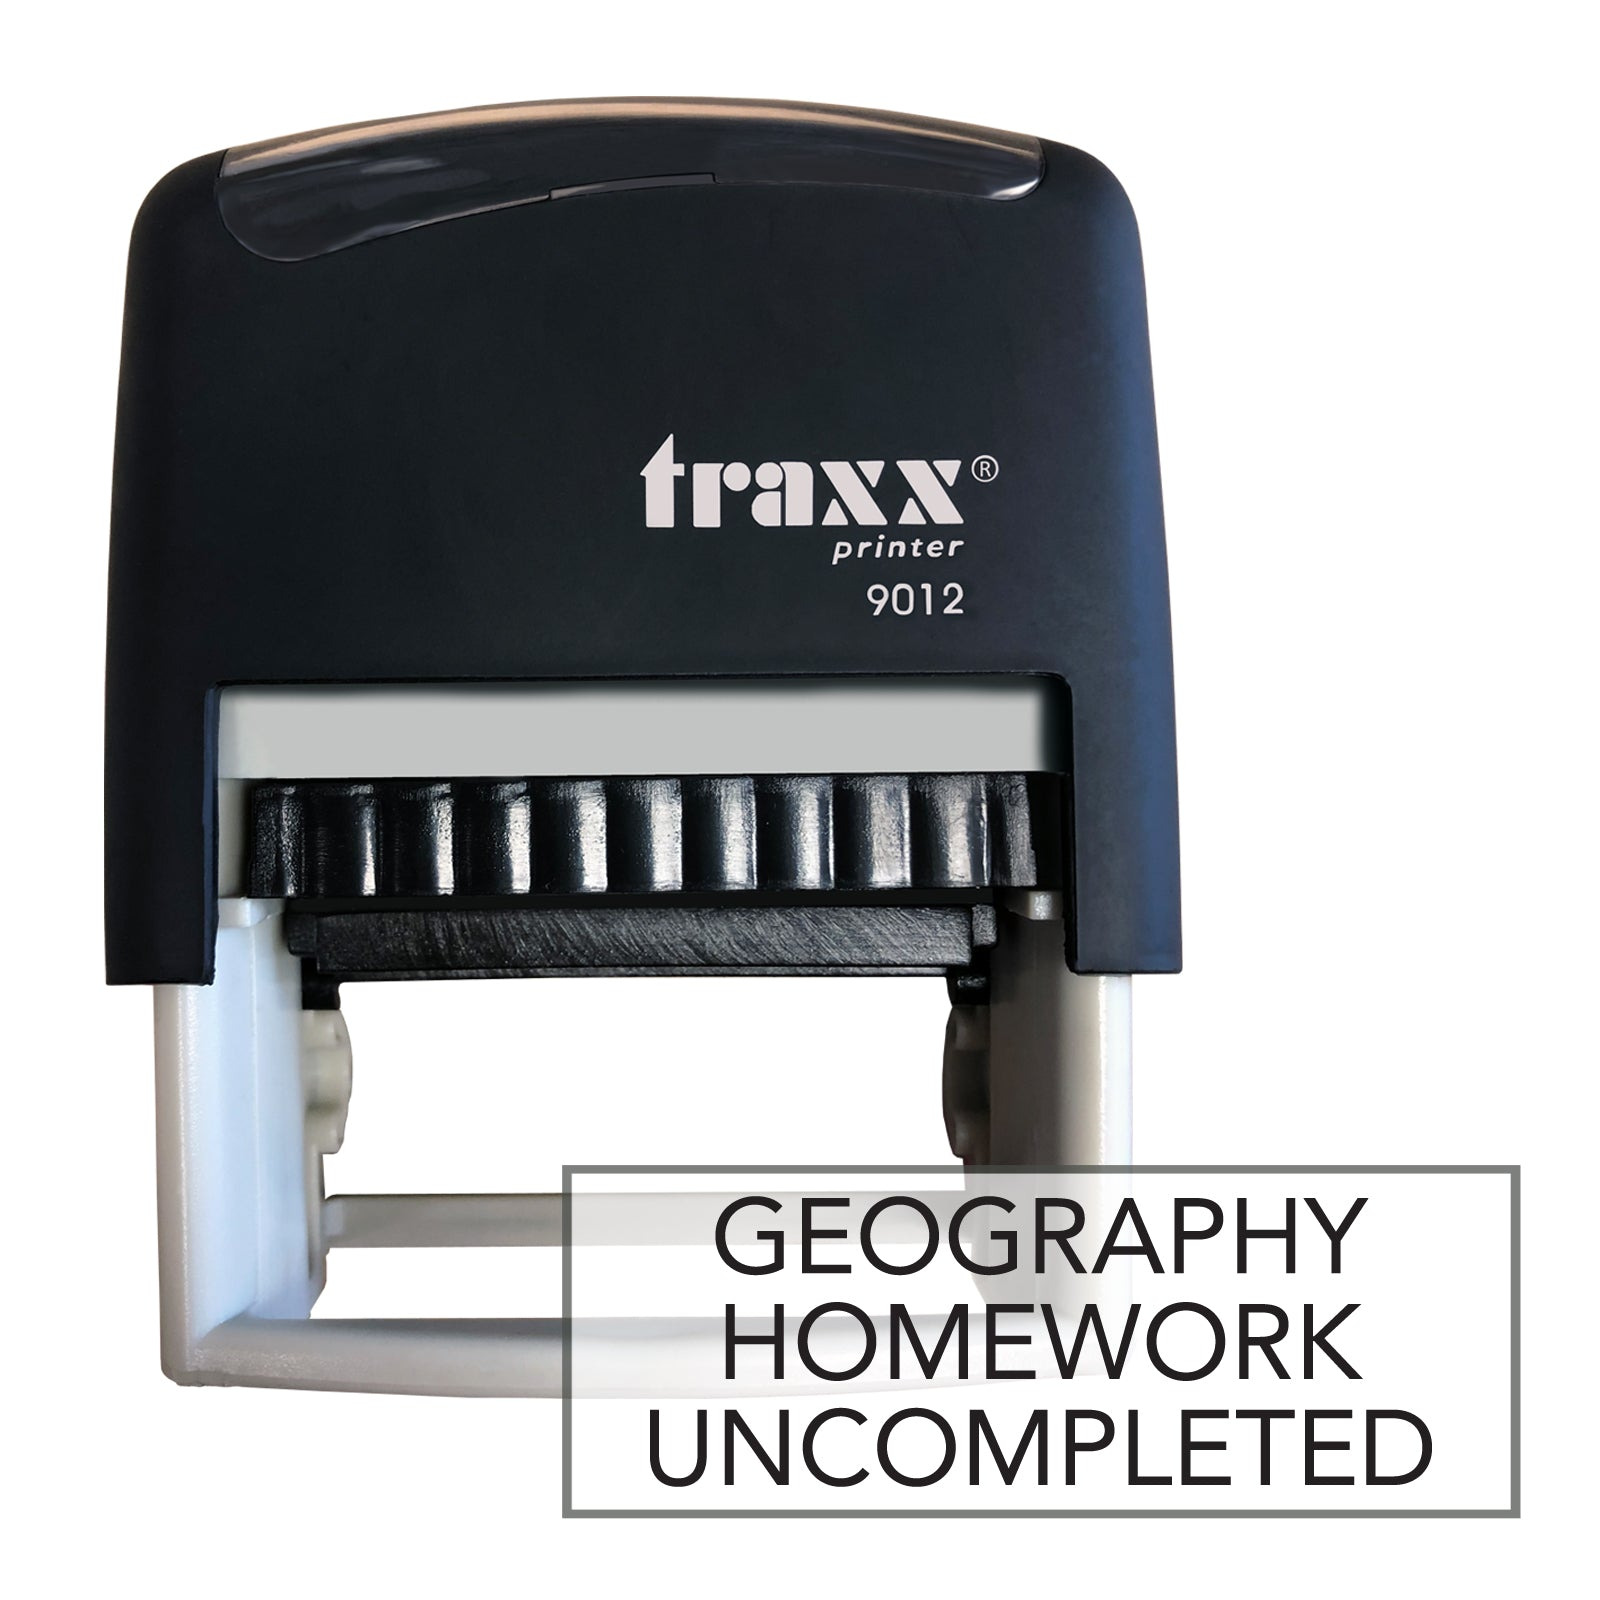 Traxx 9012 48 x 18mm Homework Uncompleted - Geography